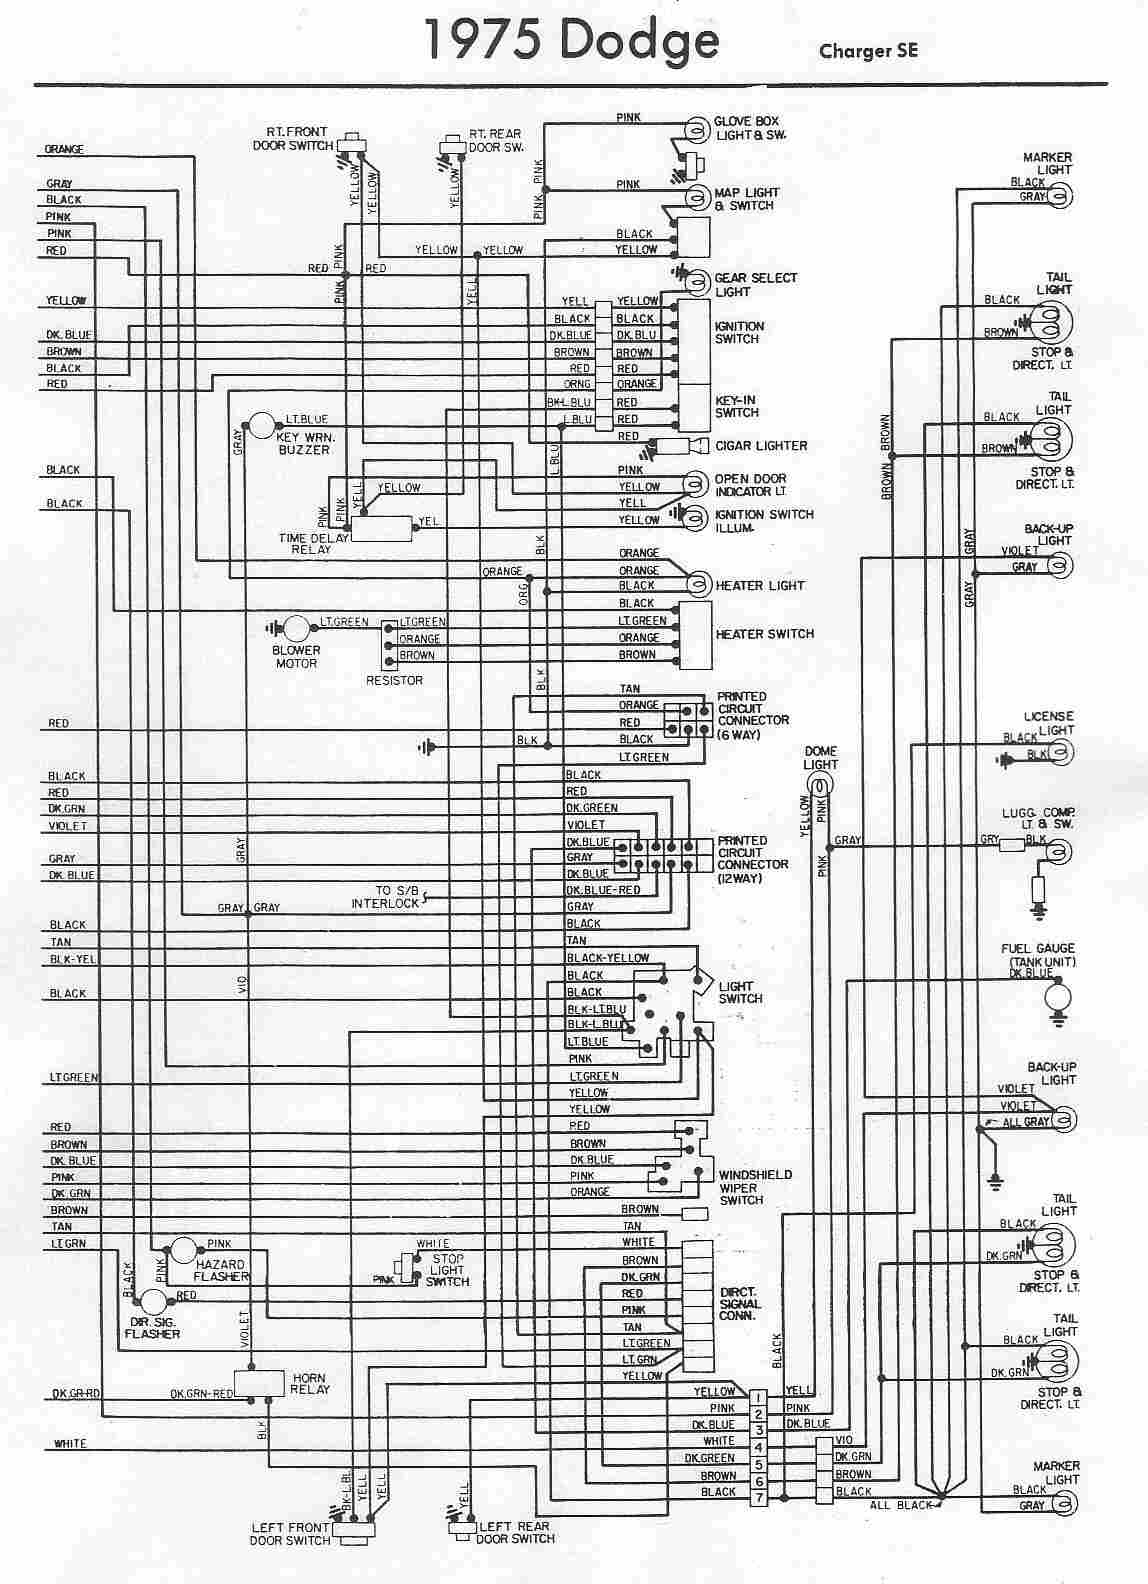 93 deville wiring diagram wiring diagram93 deville wiring diagram